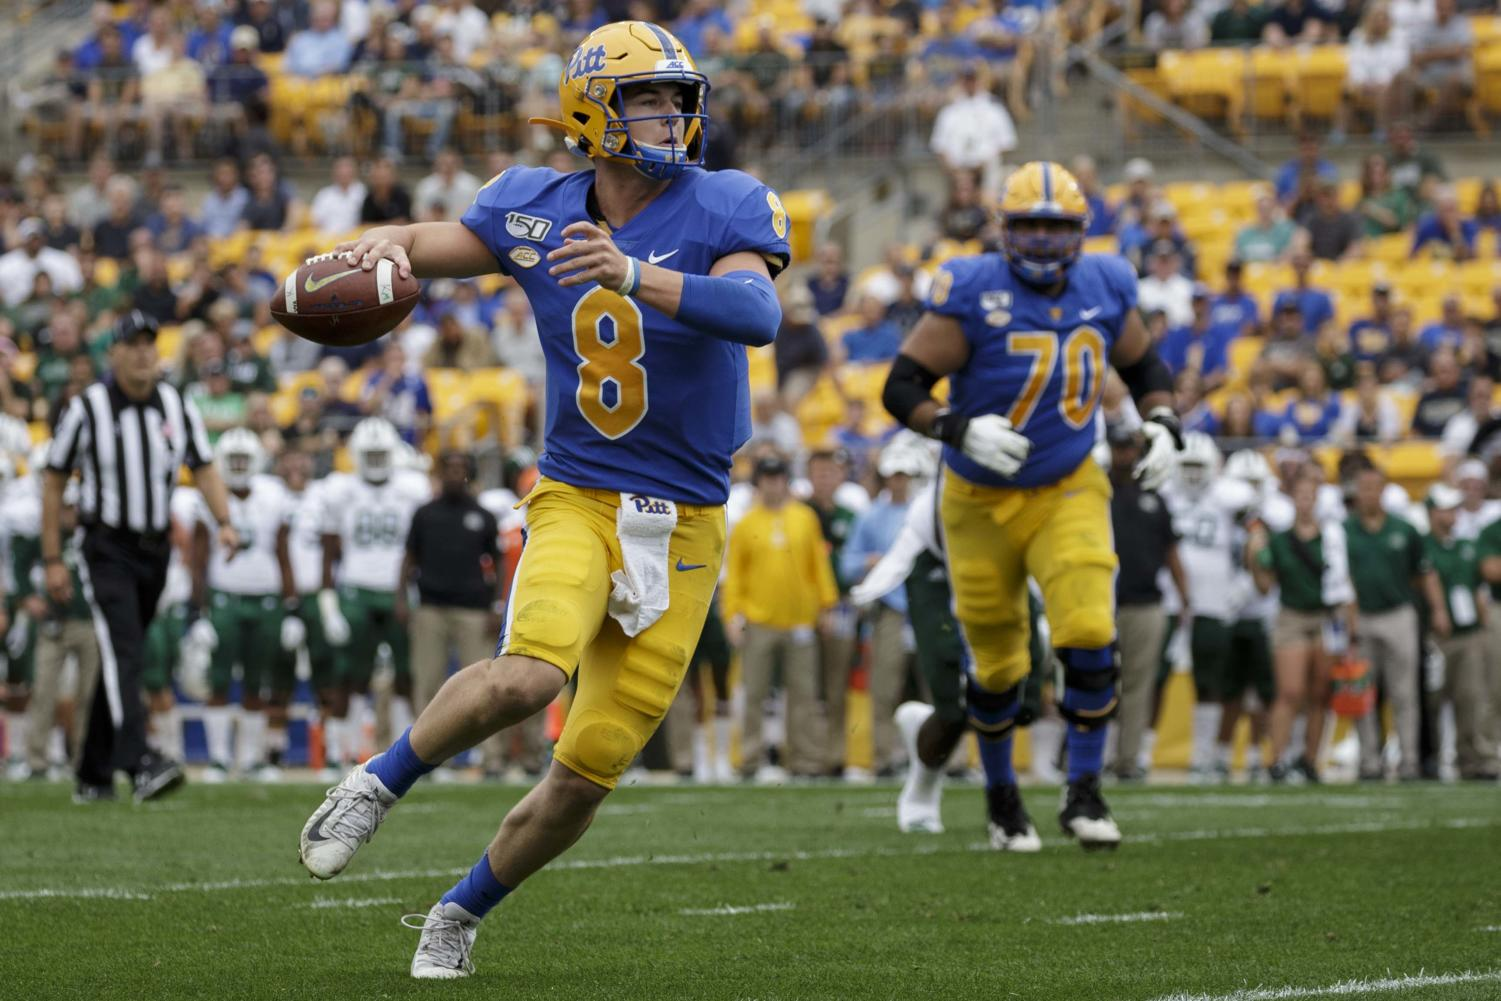 Quarterback Kenny Pickett threw the ball 34 times in just the first half at Duke on Saturday.